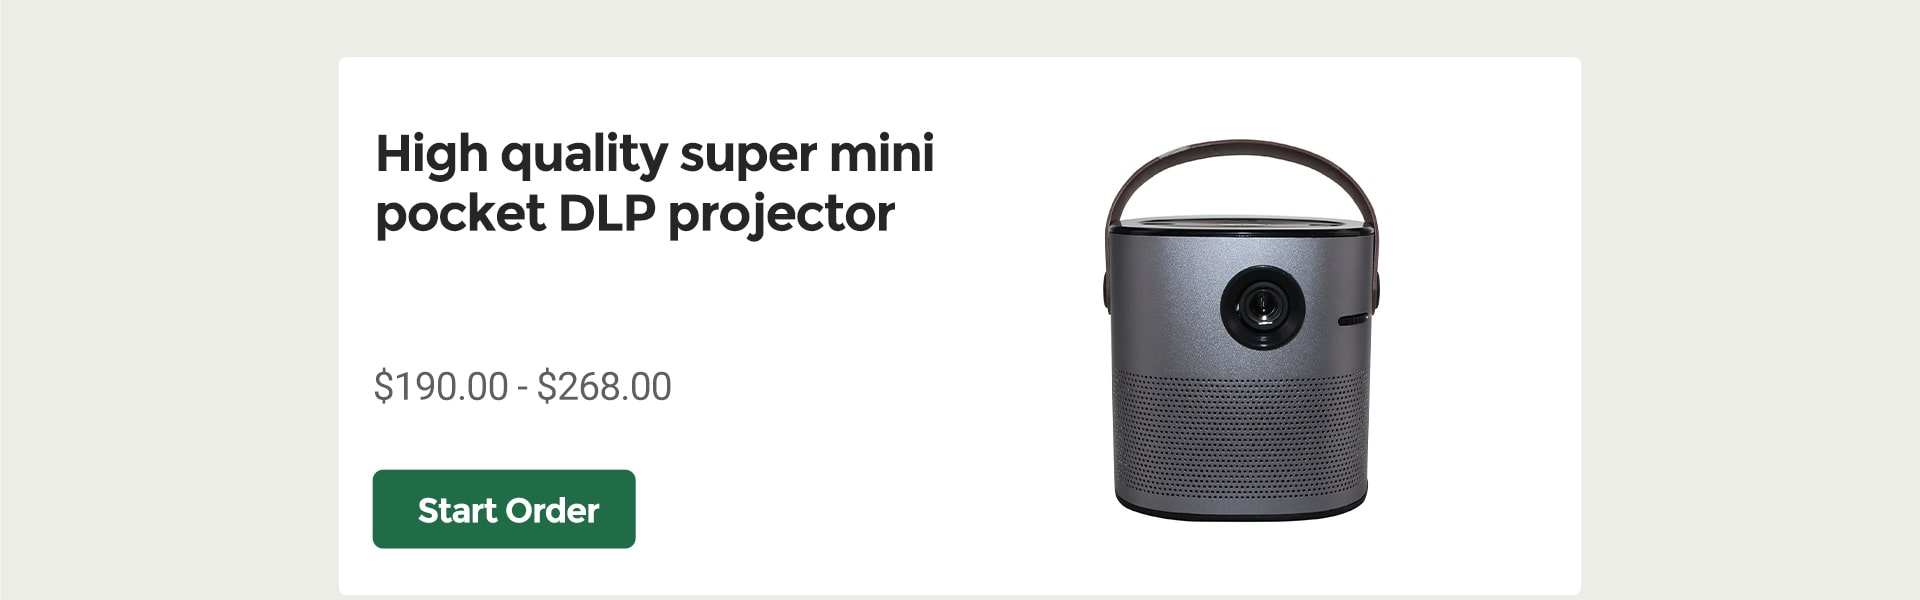 Imagine that DLP projector can put in your pocket